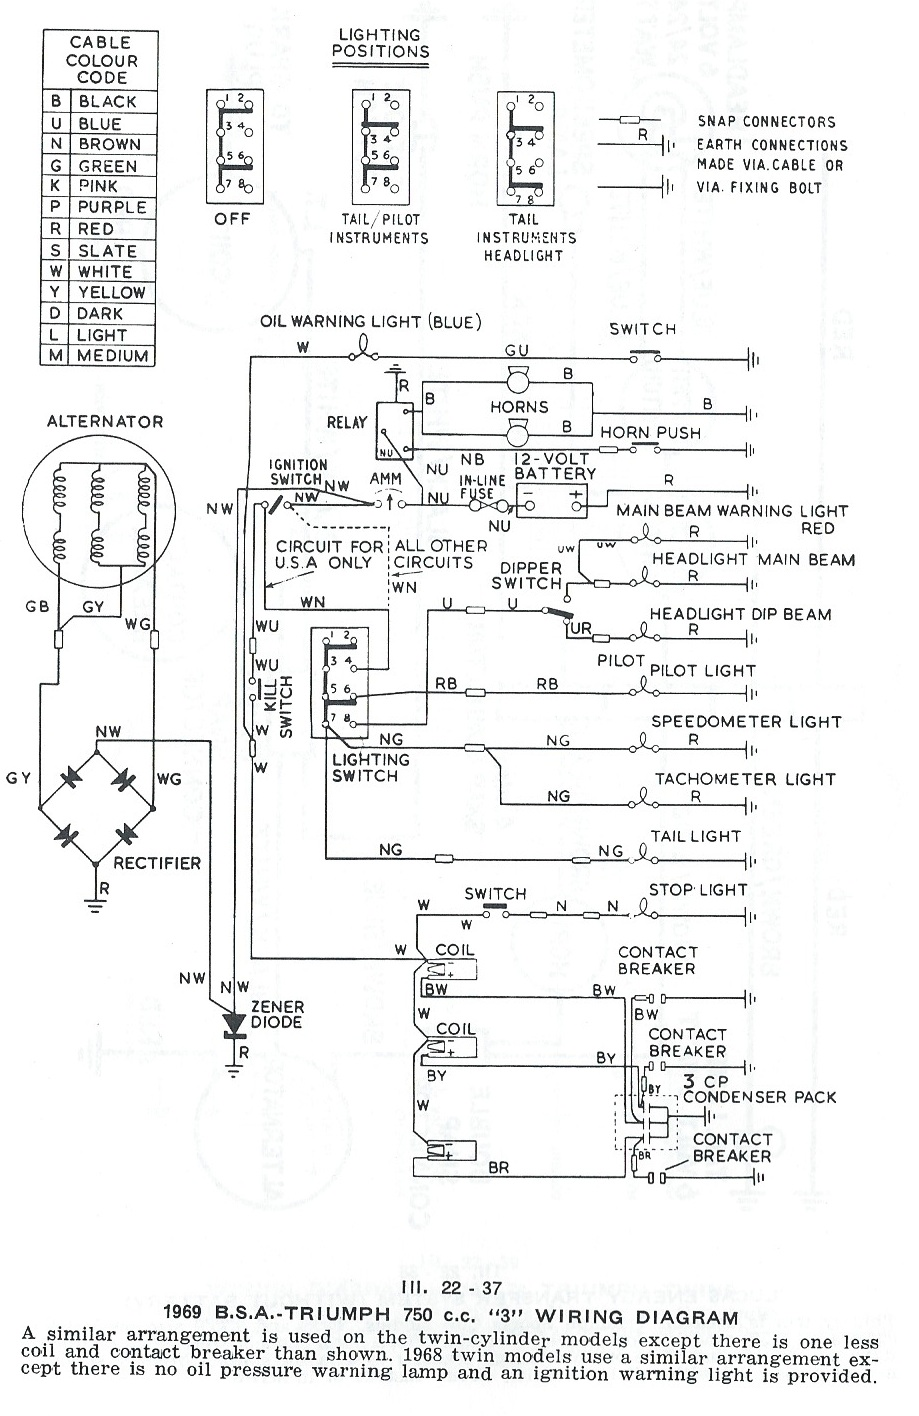 Awesome 805 Suzuki Motorcycle Wiring Diagrams Contemporary ...